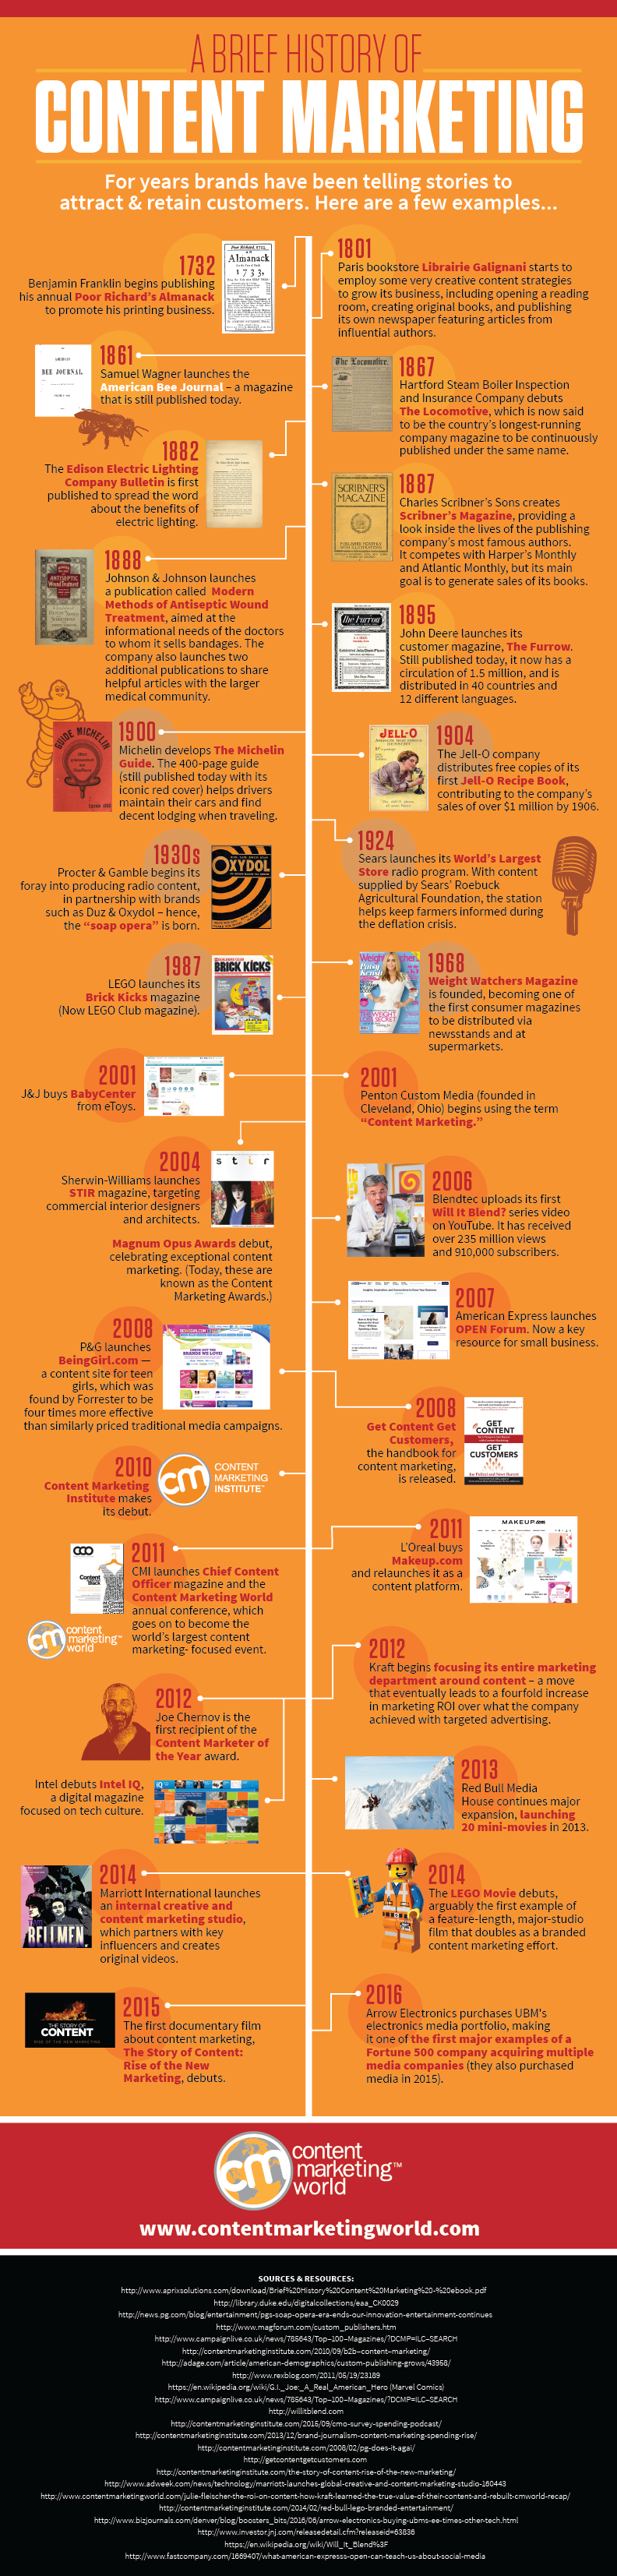 History of Content Marketing Infographic 2016